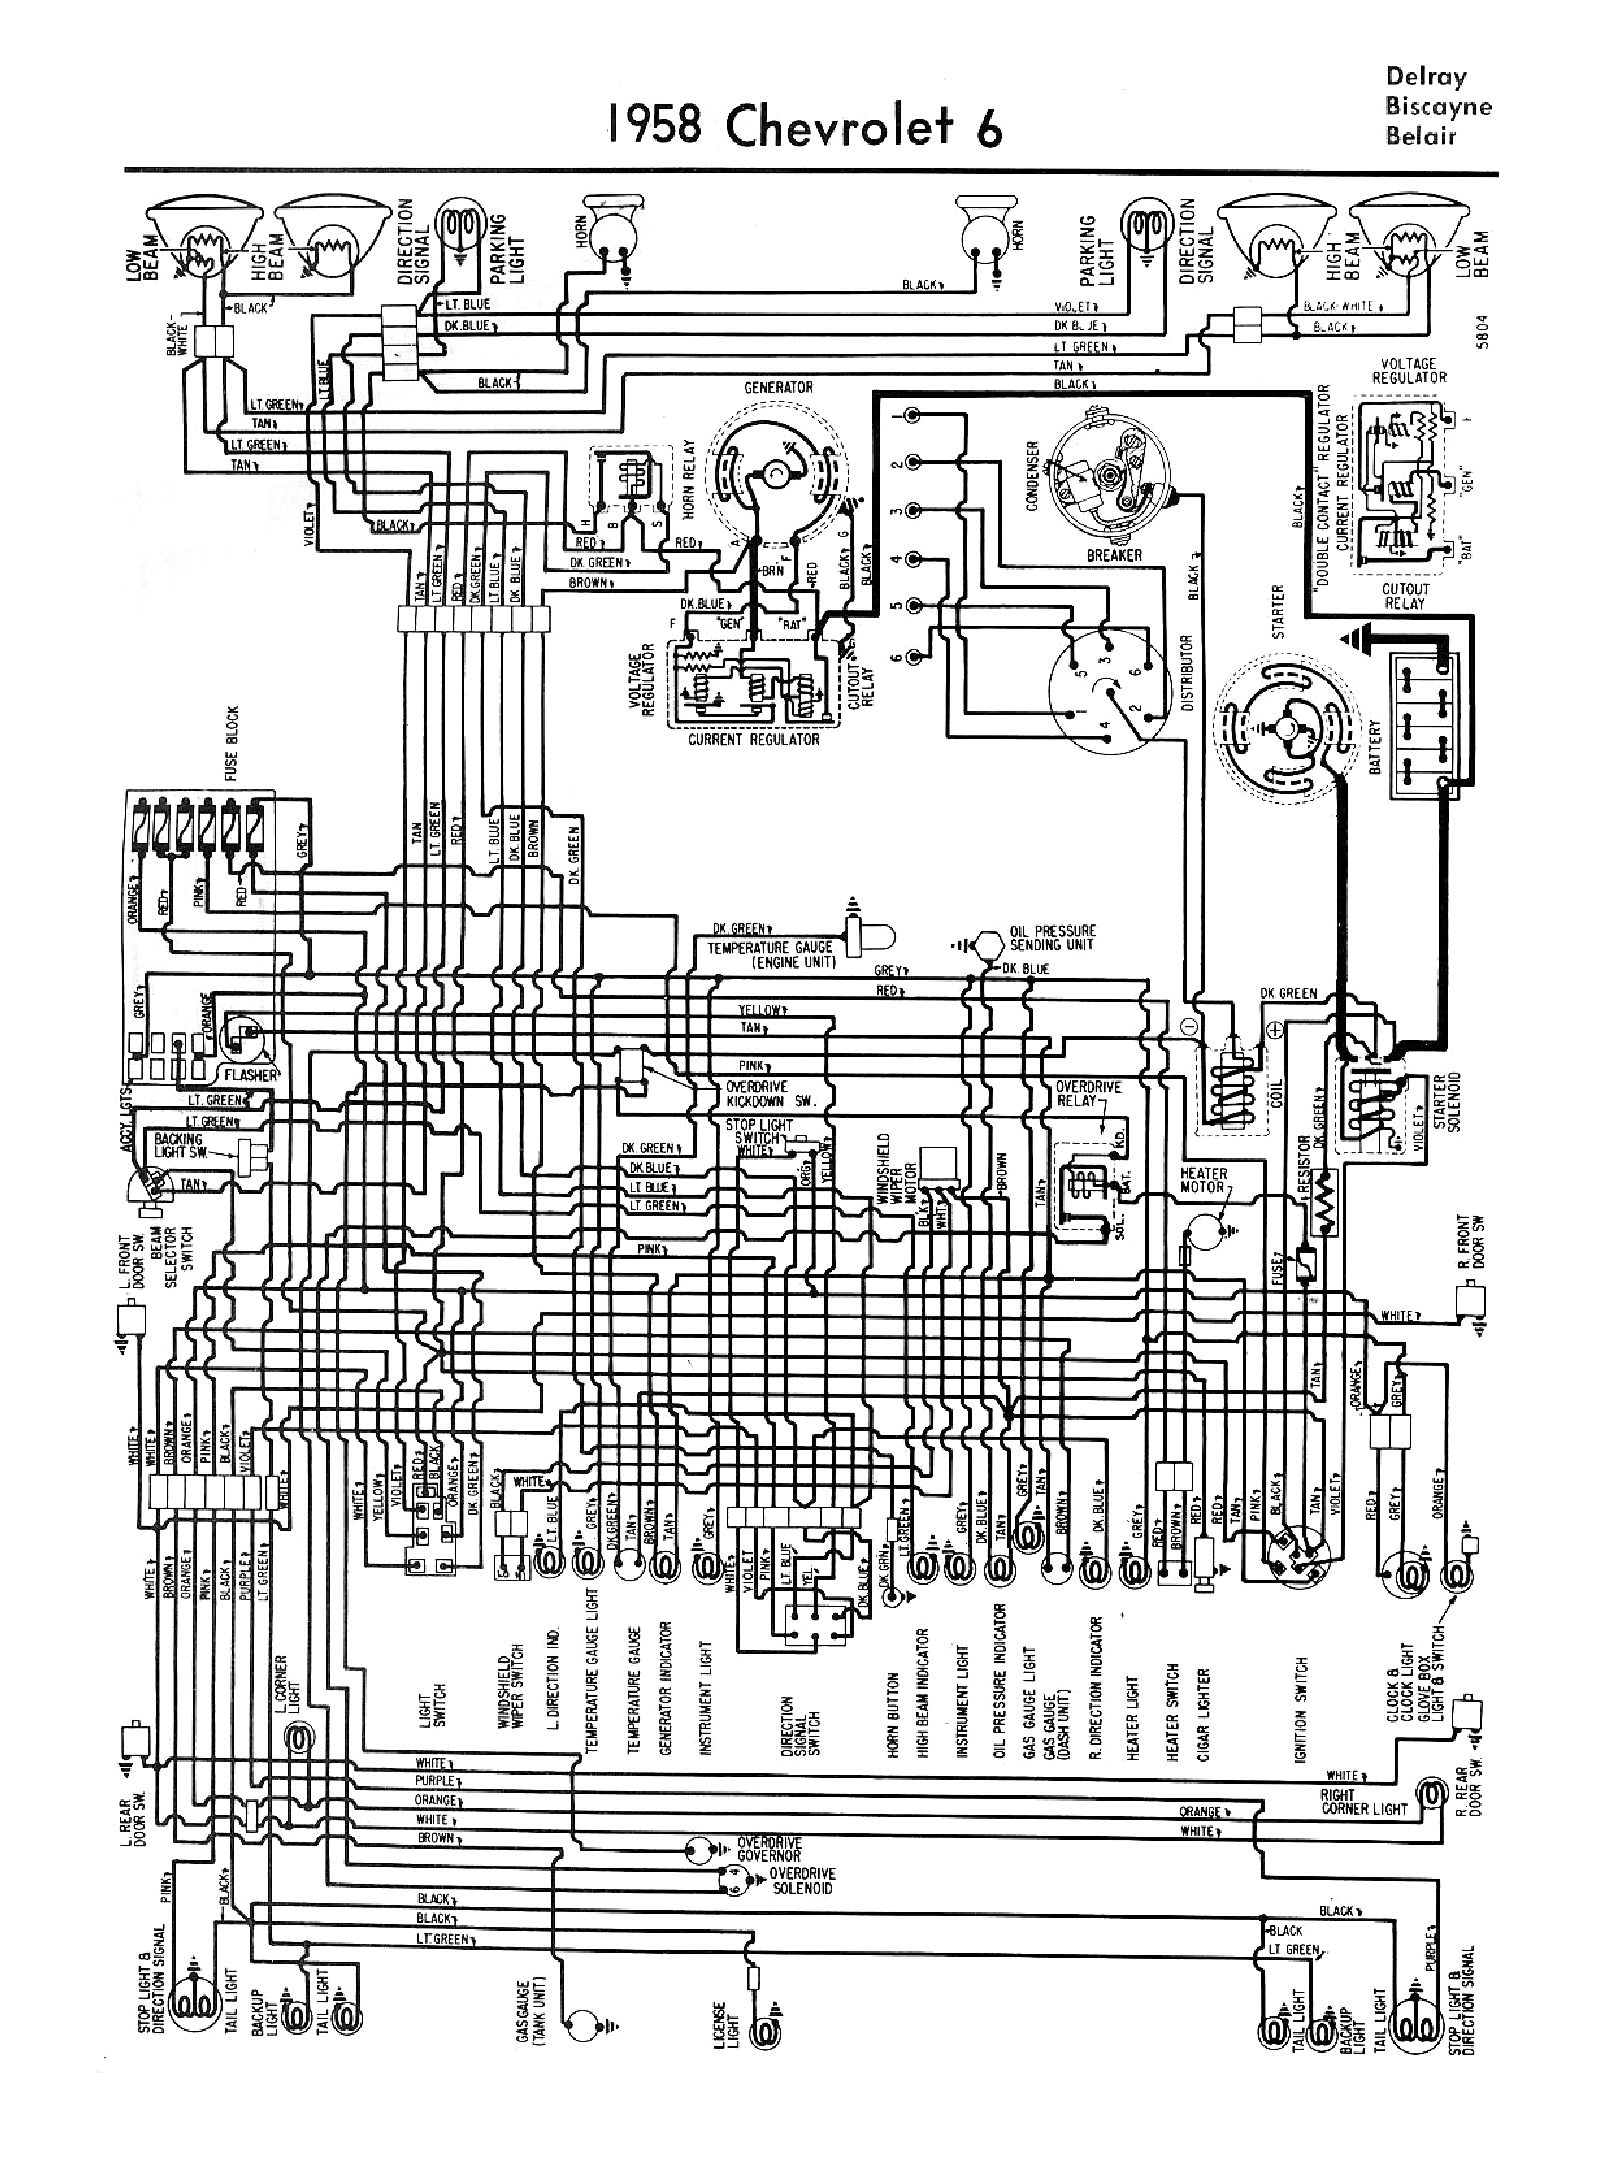 chevy wiring diagrams wiring for chevy truck windshield wiper wiring diagram for chevy truck #2